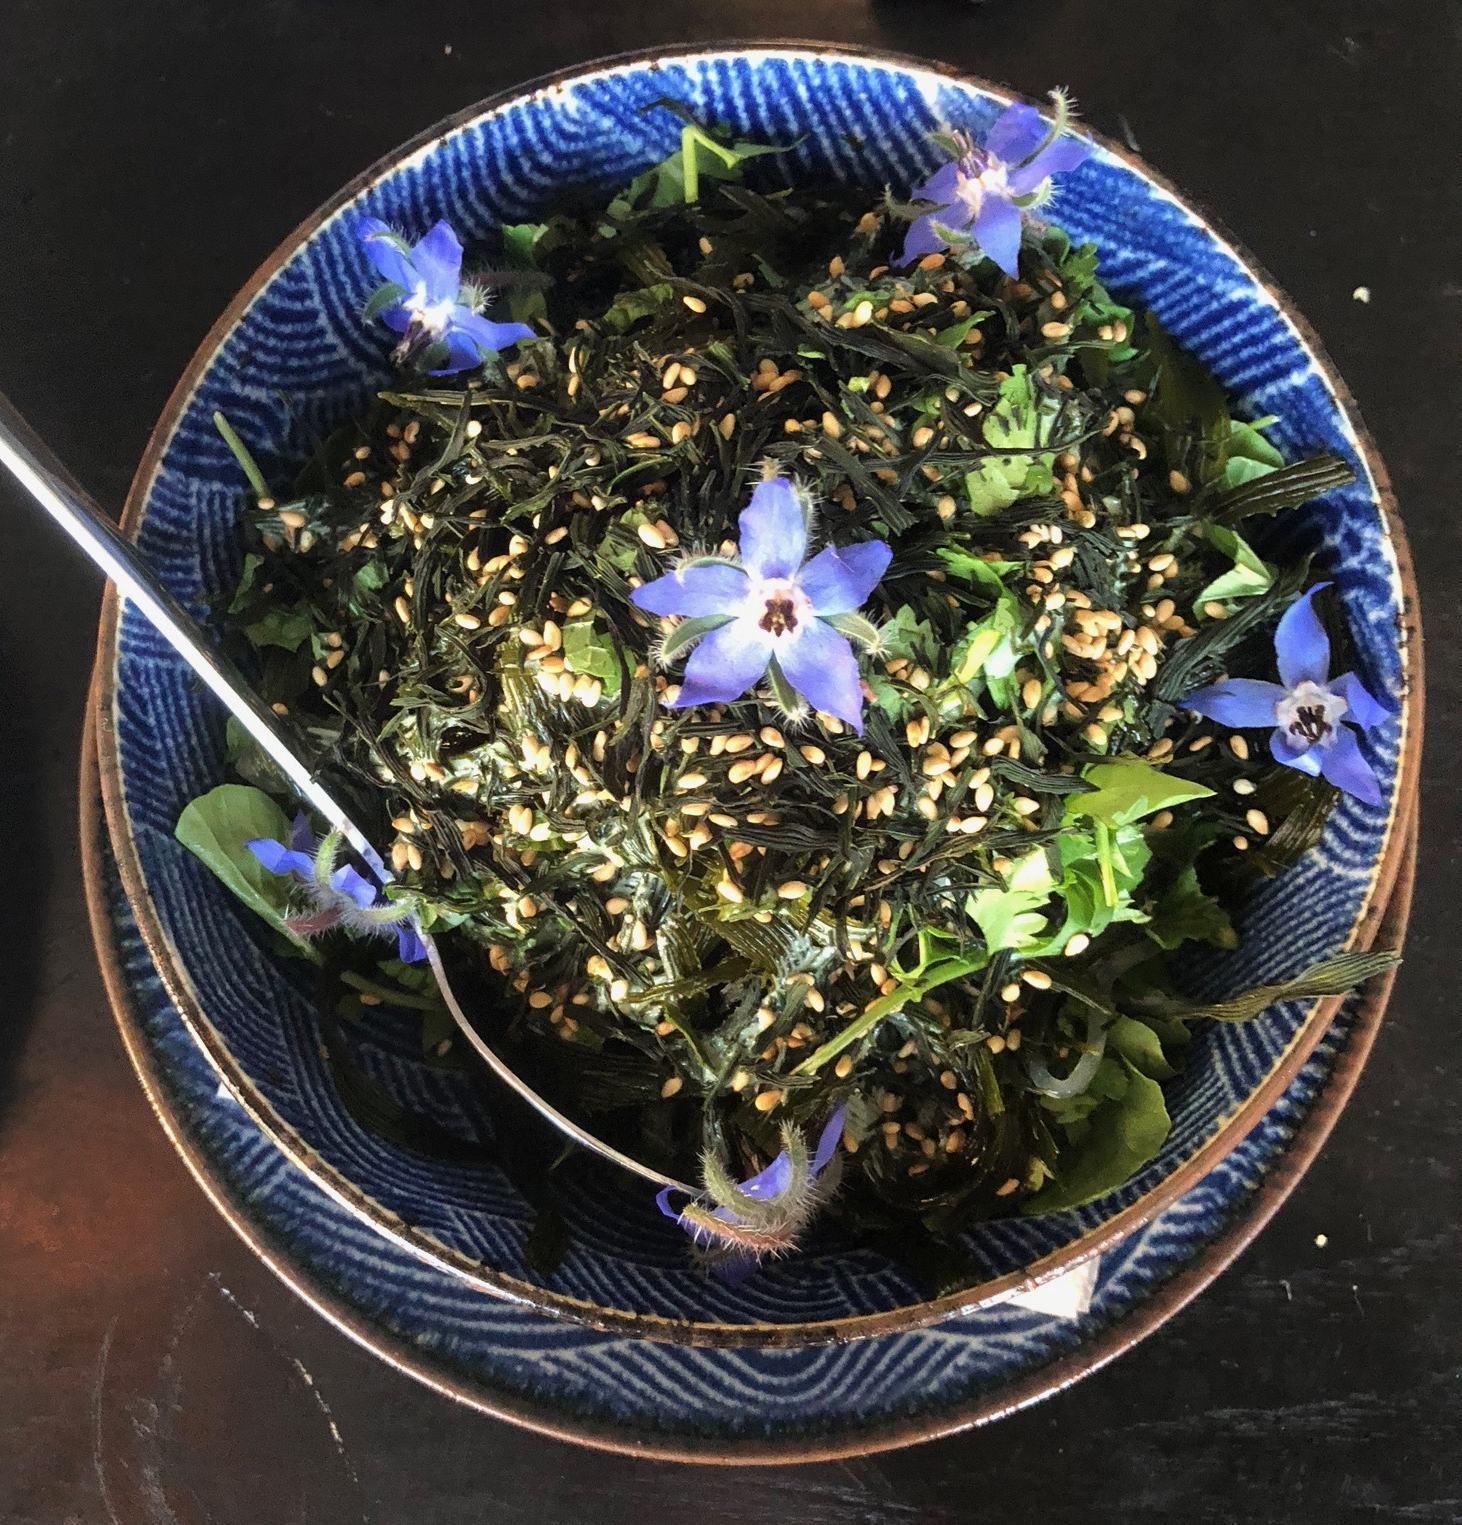 sea vegetable salad - ocean ribbons + kelp noodles / spirulina ginger cream / herbs and cress / house sea palm furikake